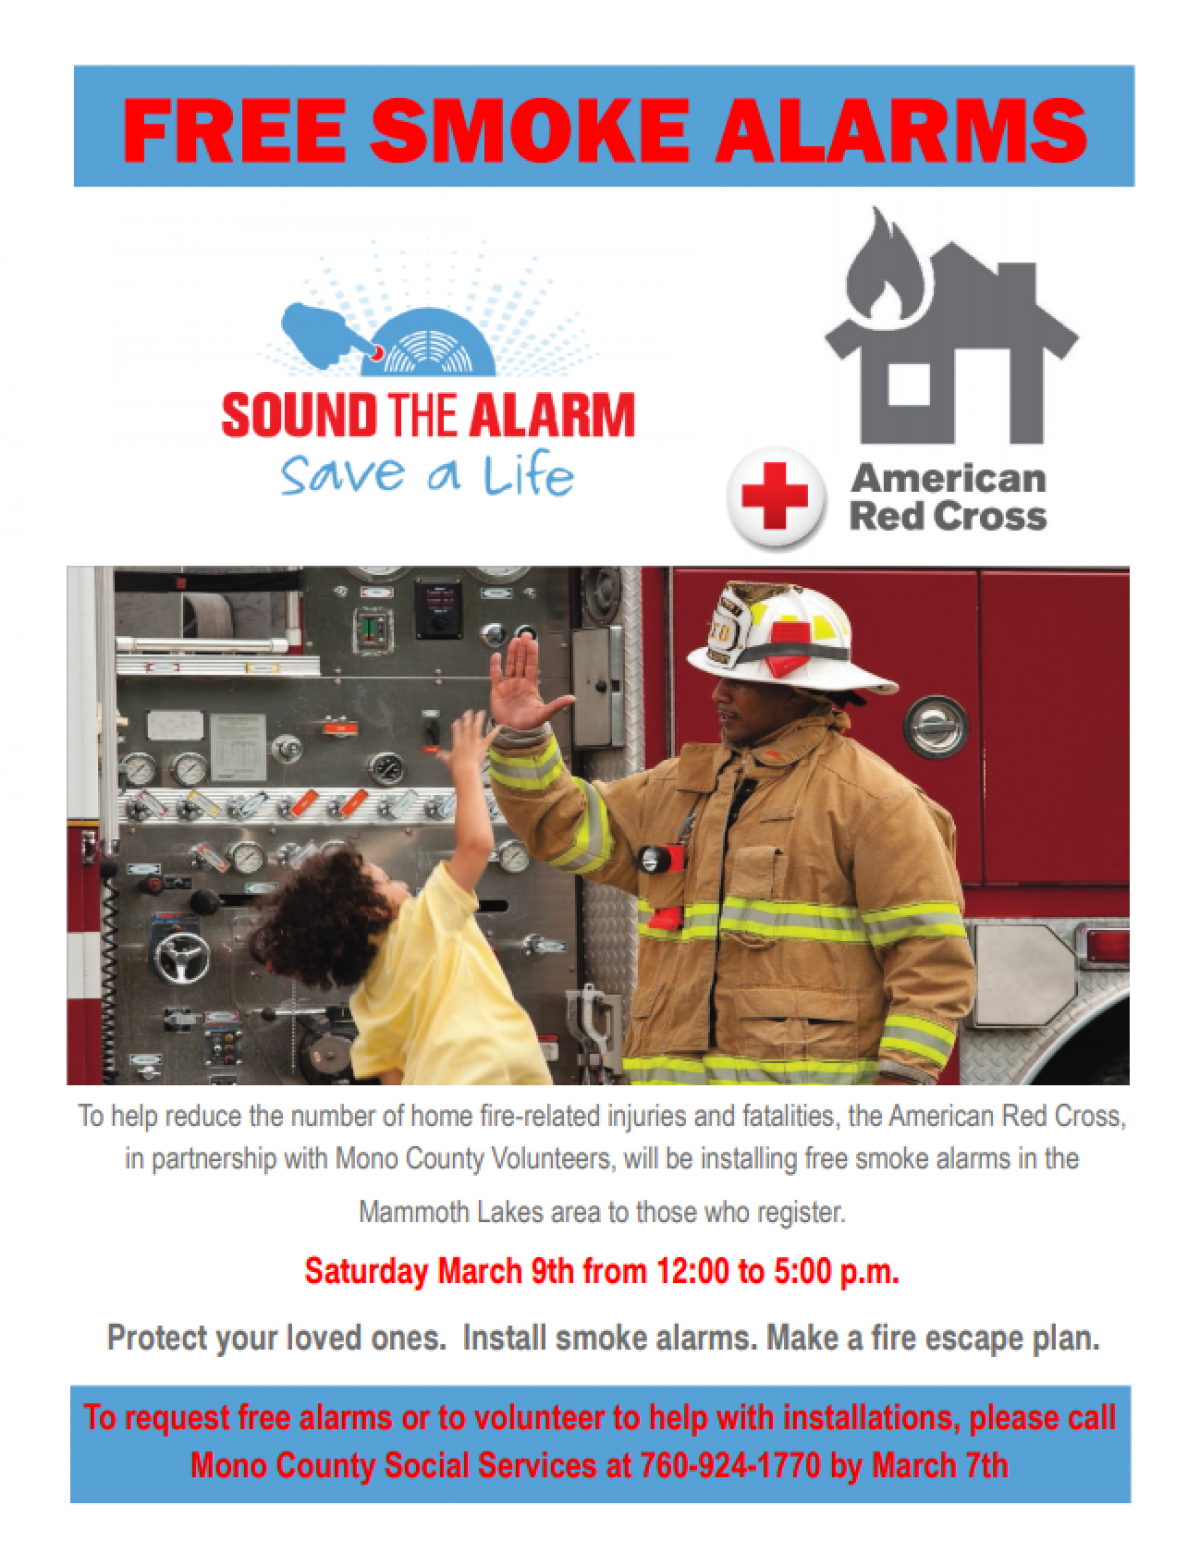 Sound the Alarm Fire Campaign